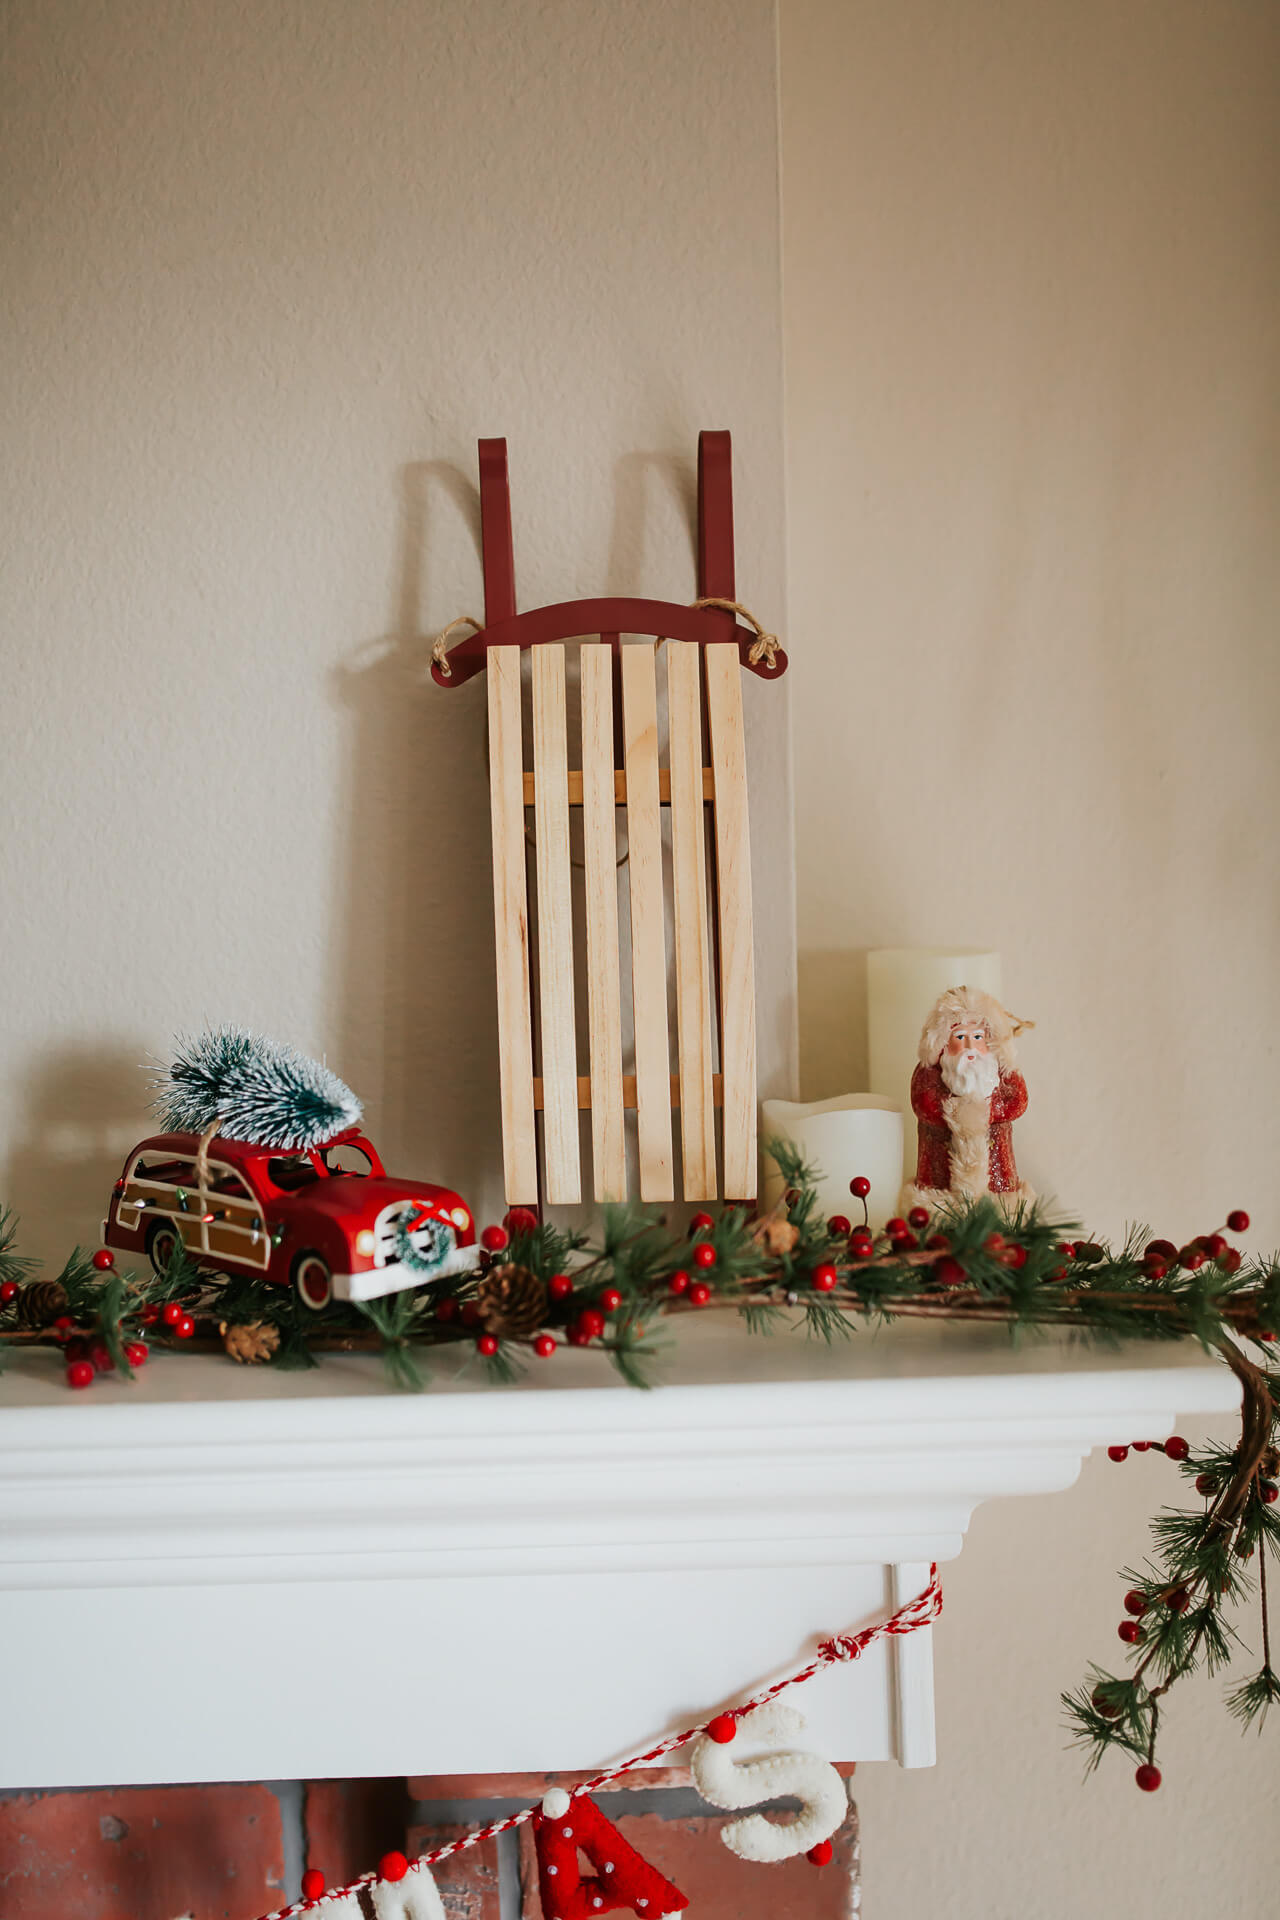 Cozy holiday decor for the home. - M Loves M @marmar